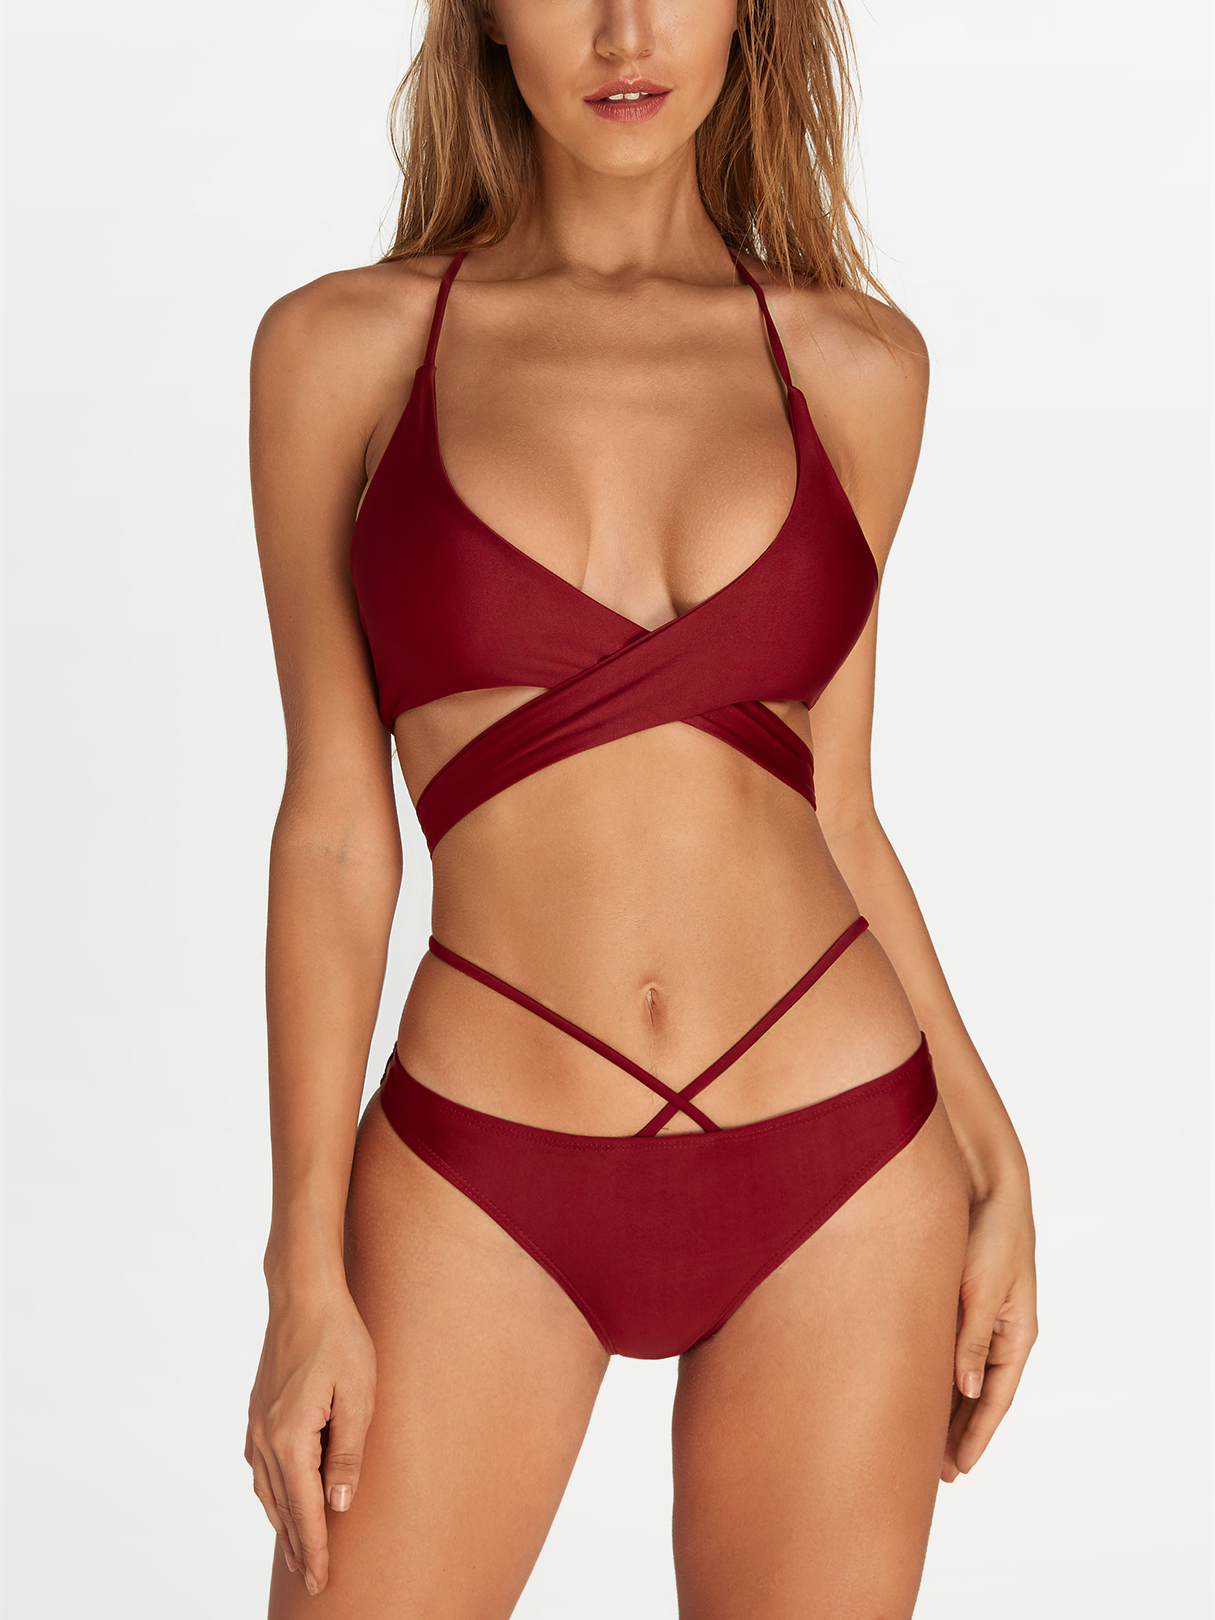 Burgundy Criss Cross Halter Tie Back Bikini tie side criss cross knot back bikini set